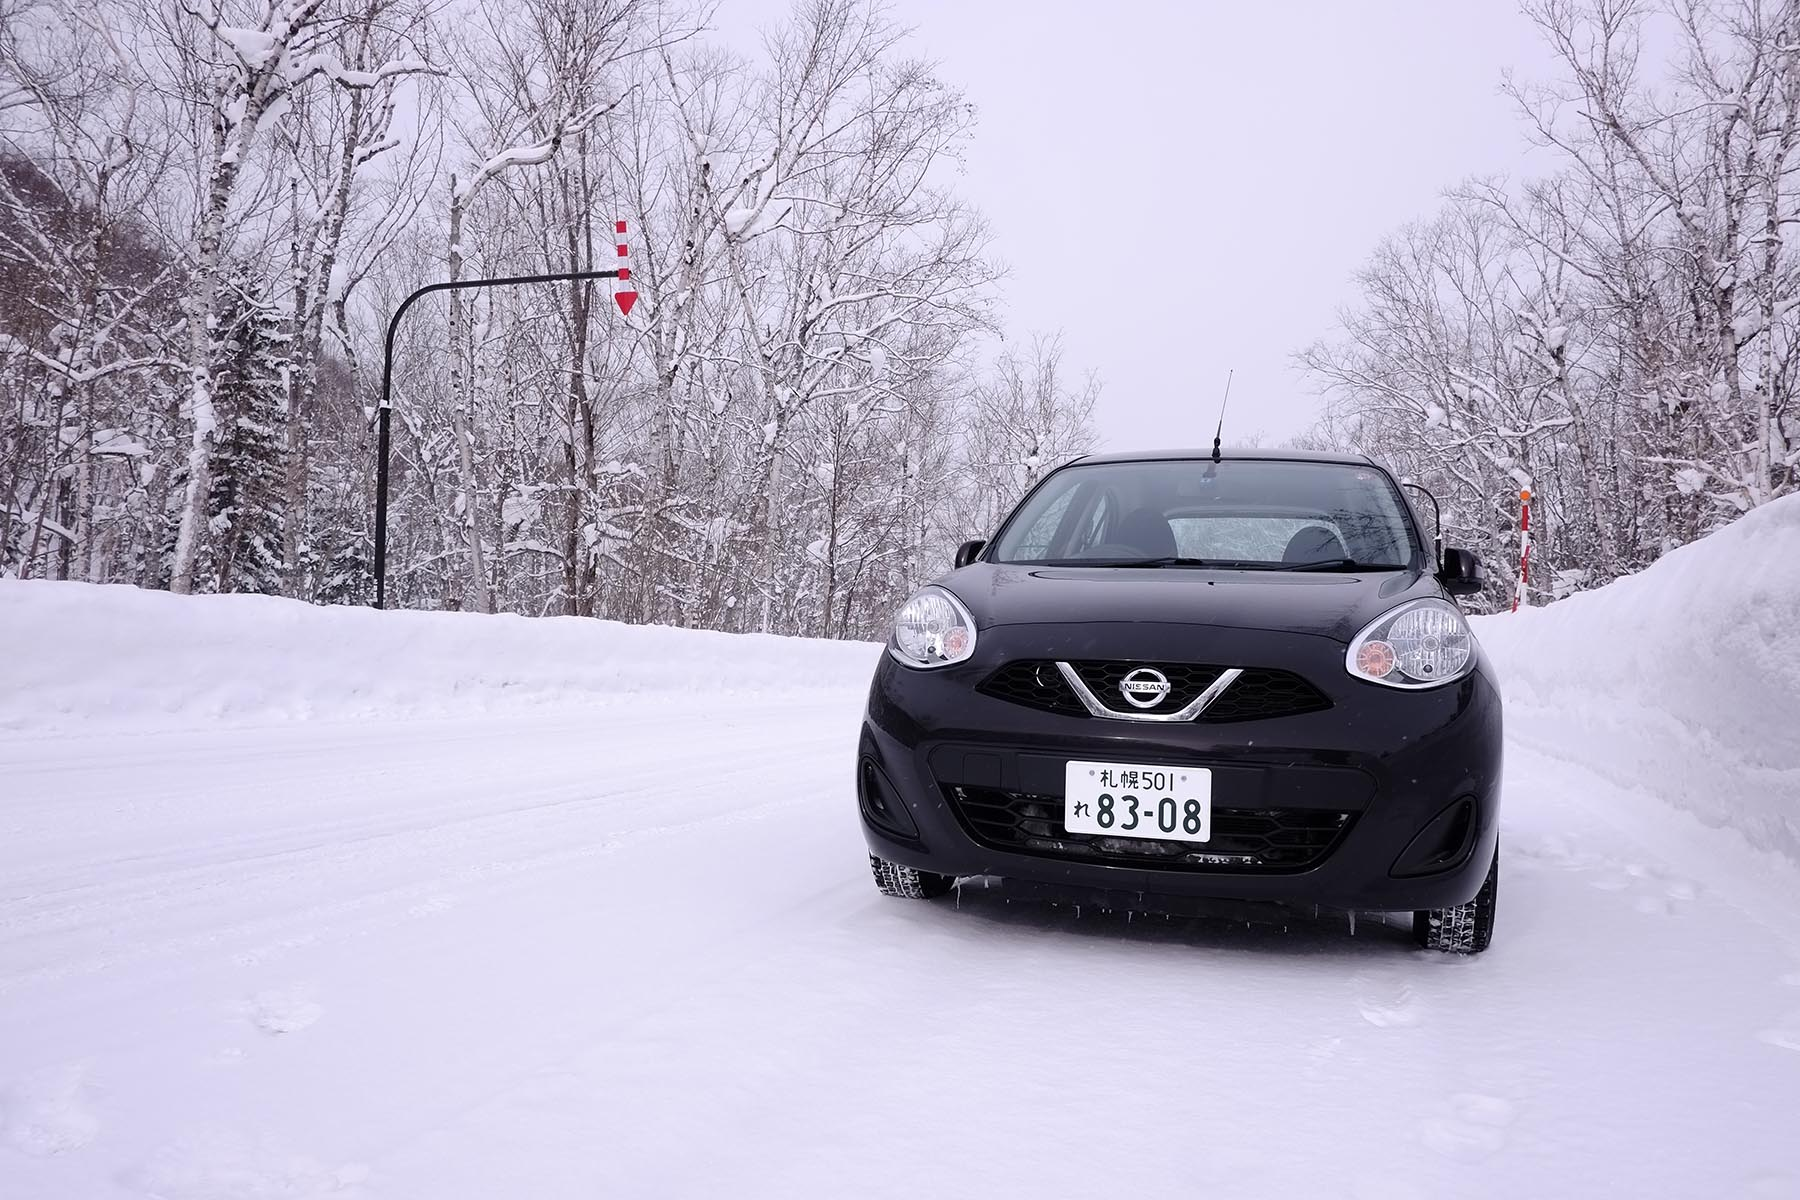 Car rental in Japan – Sharing my experience and tips